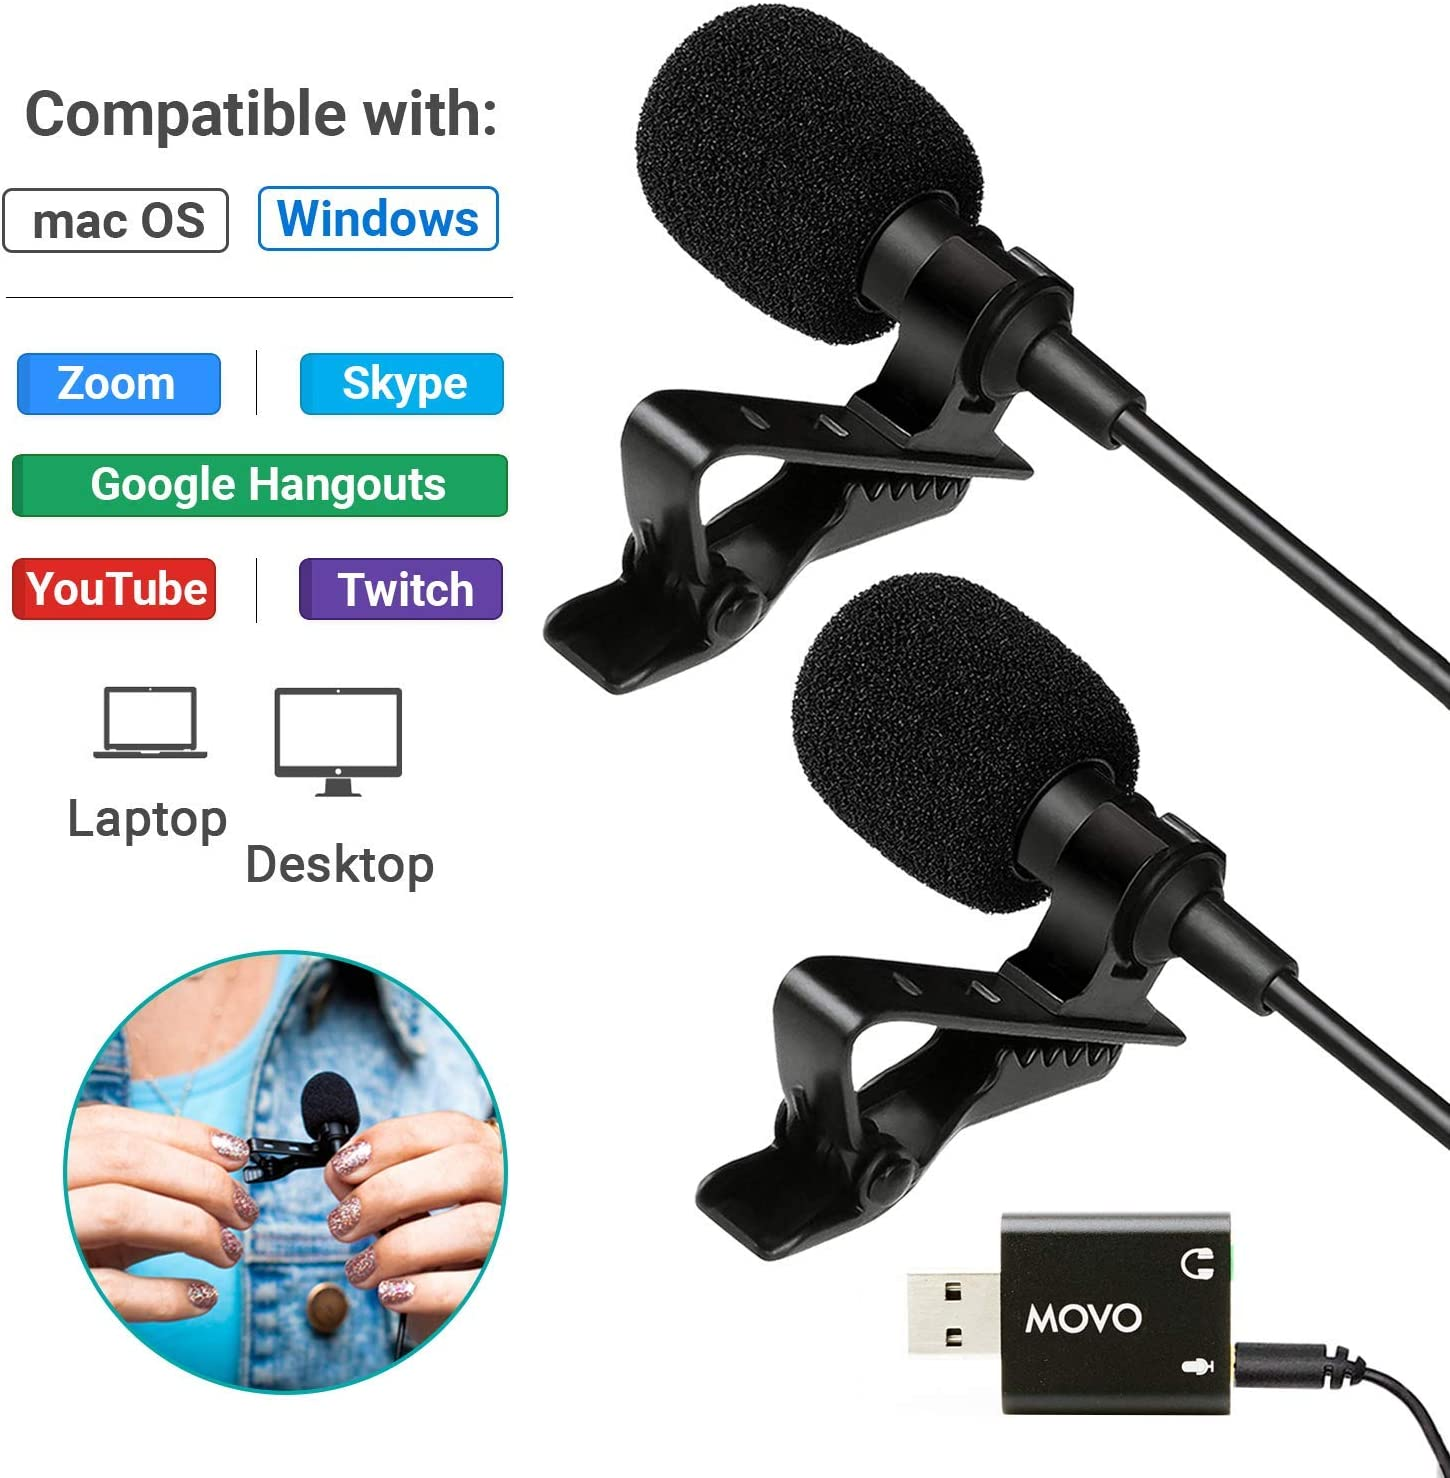 Movo Sevenoak Dual Headed Universal USB Computer Microphone with USB Adapter - Compatible with Laptop, Desktop, PC and Mac, Smartphones, Cameras, Podcasting, Gaming, Remote Work and Laptop Microphone